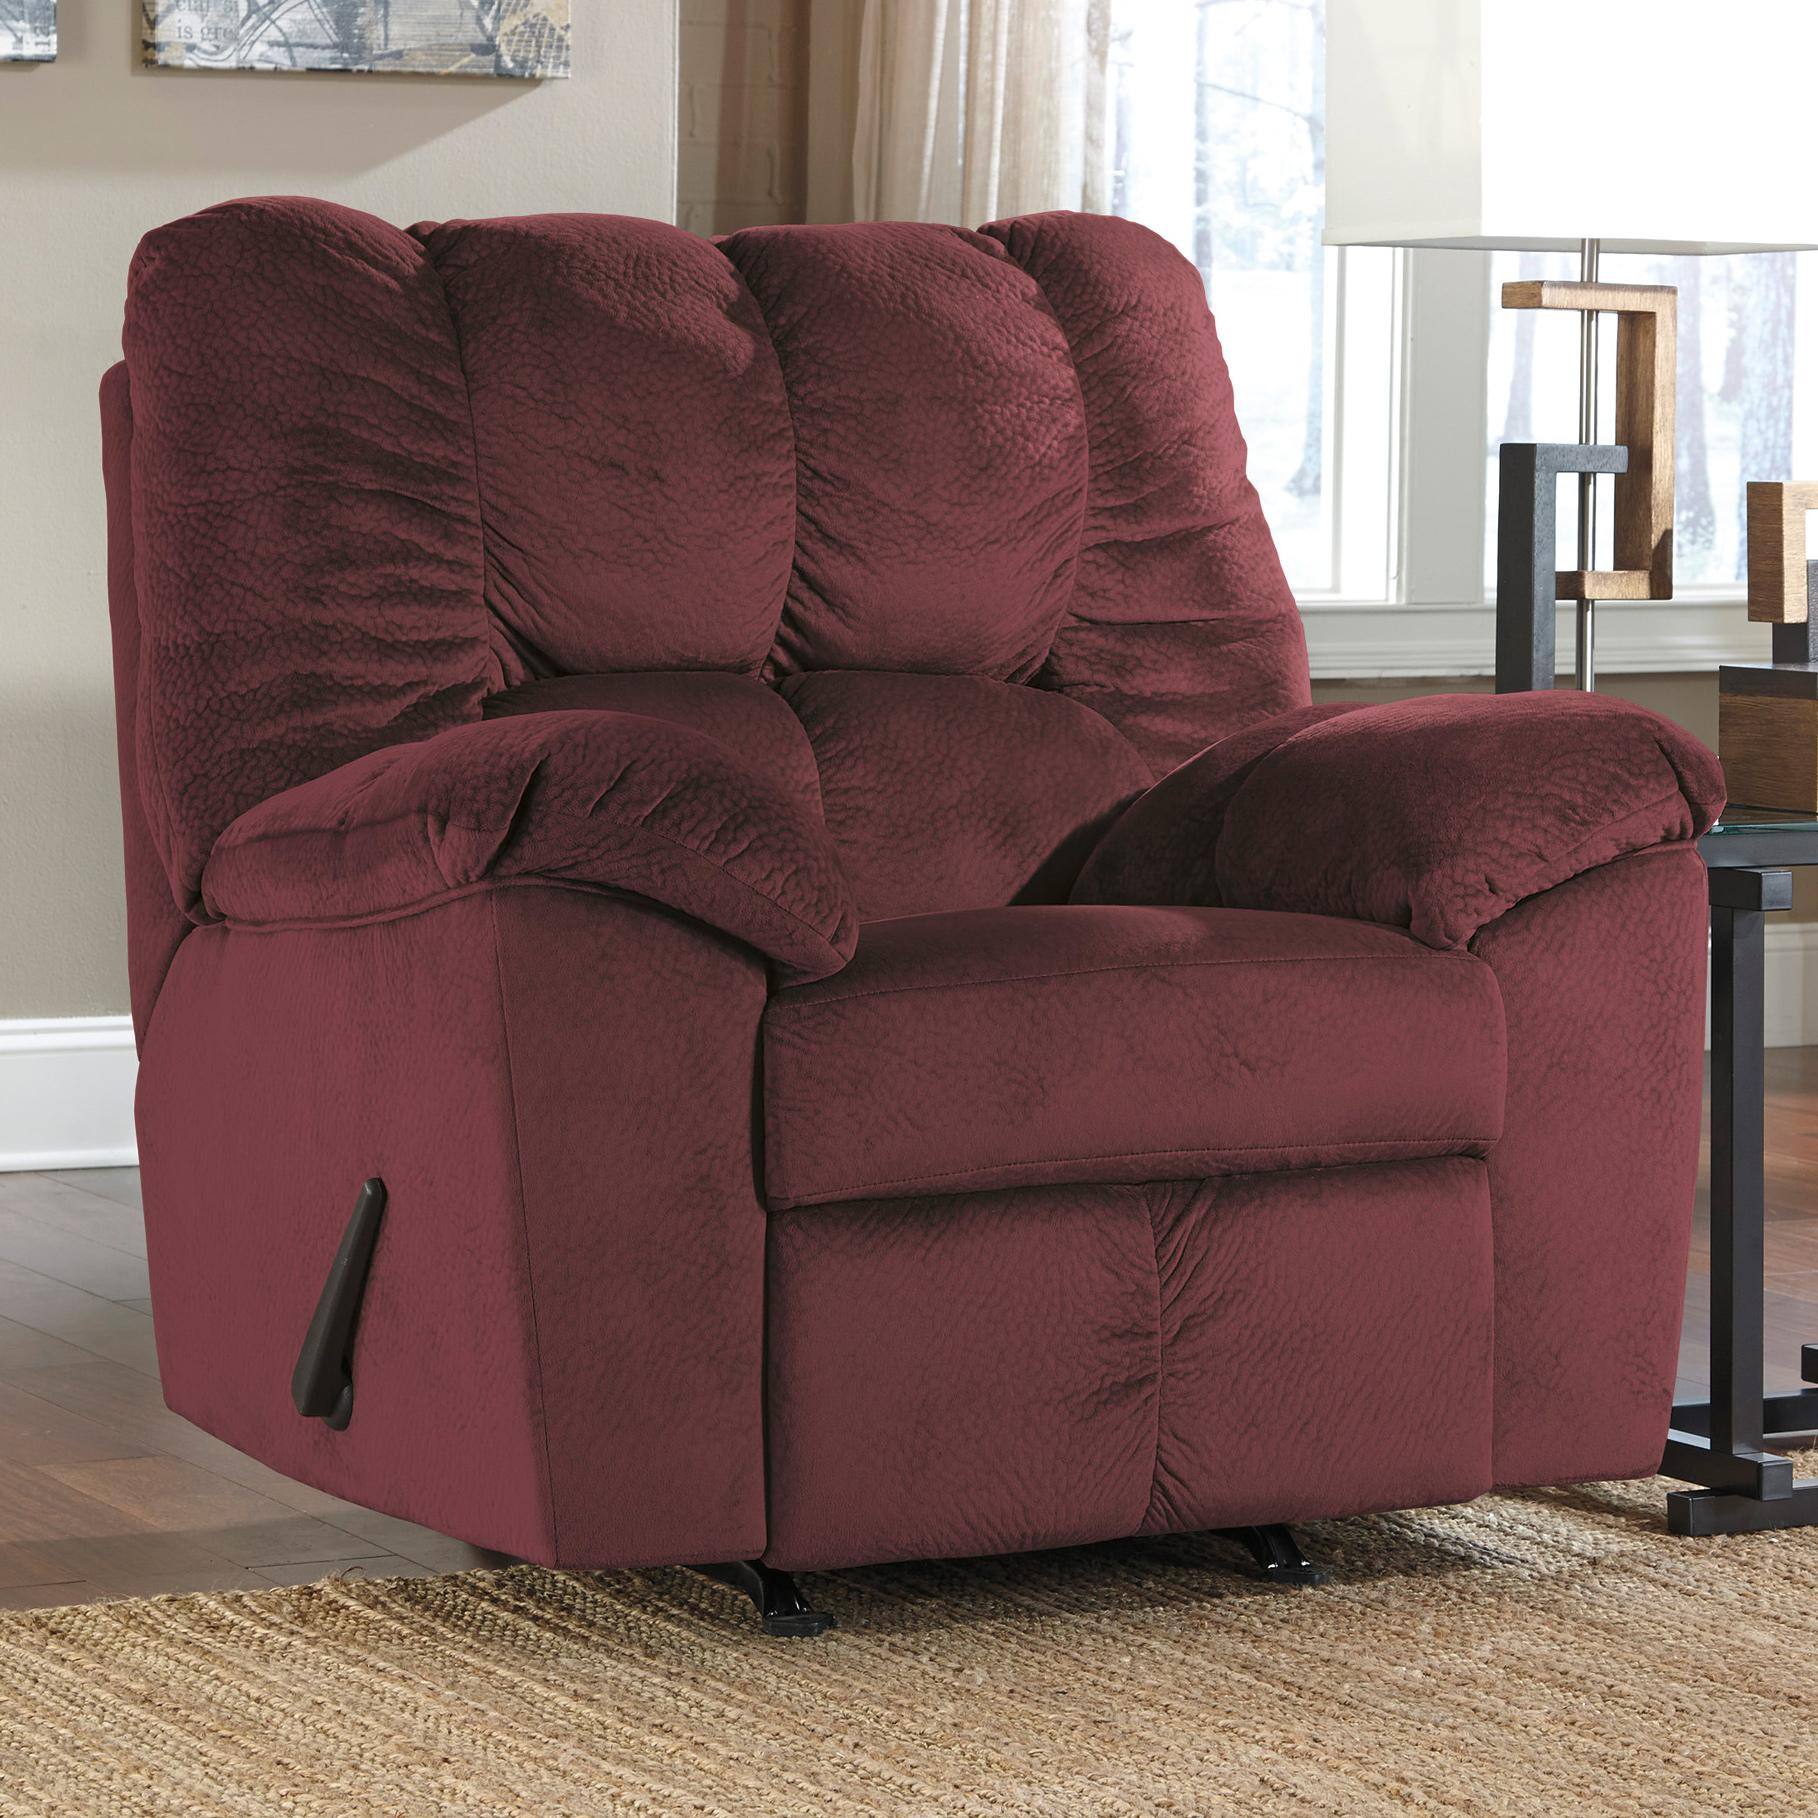 Signature Design by Ashley Julson - Burgundy Rocker Recliner - Item Number: 2660225